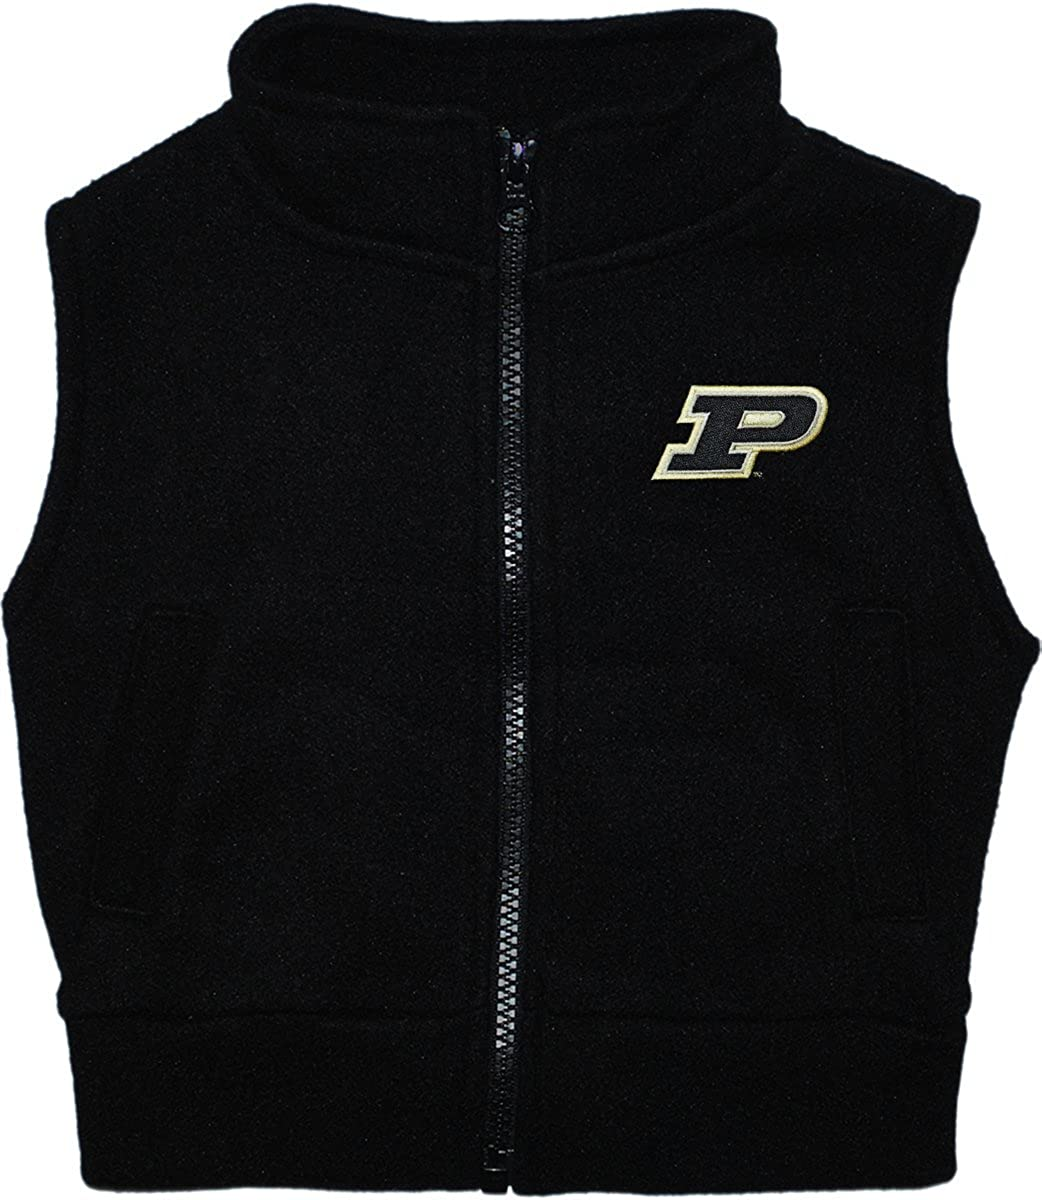 Creative Knitwear Purdue University Boilermakers Baby and Toddler Polar Fleece Vest